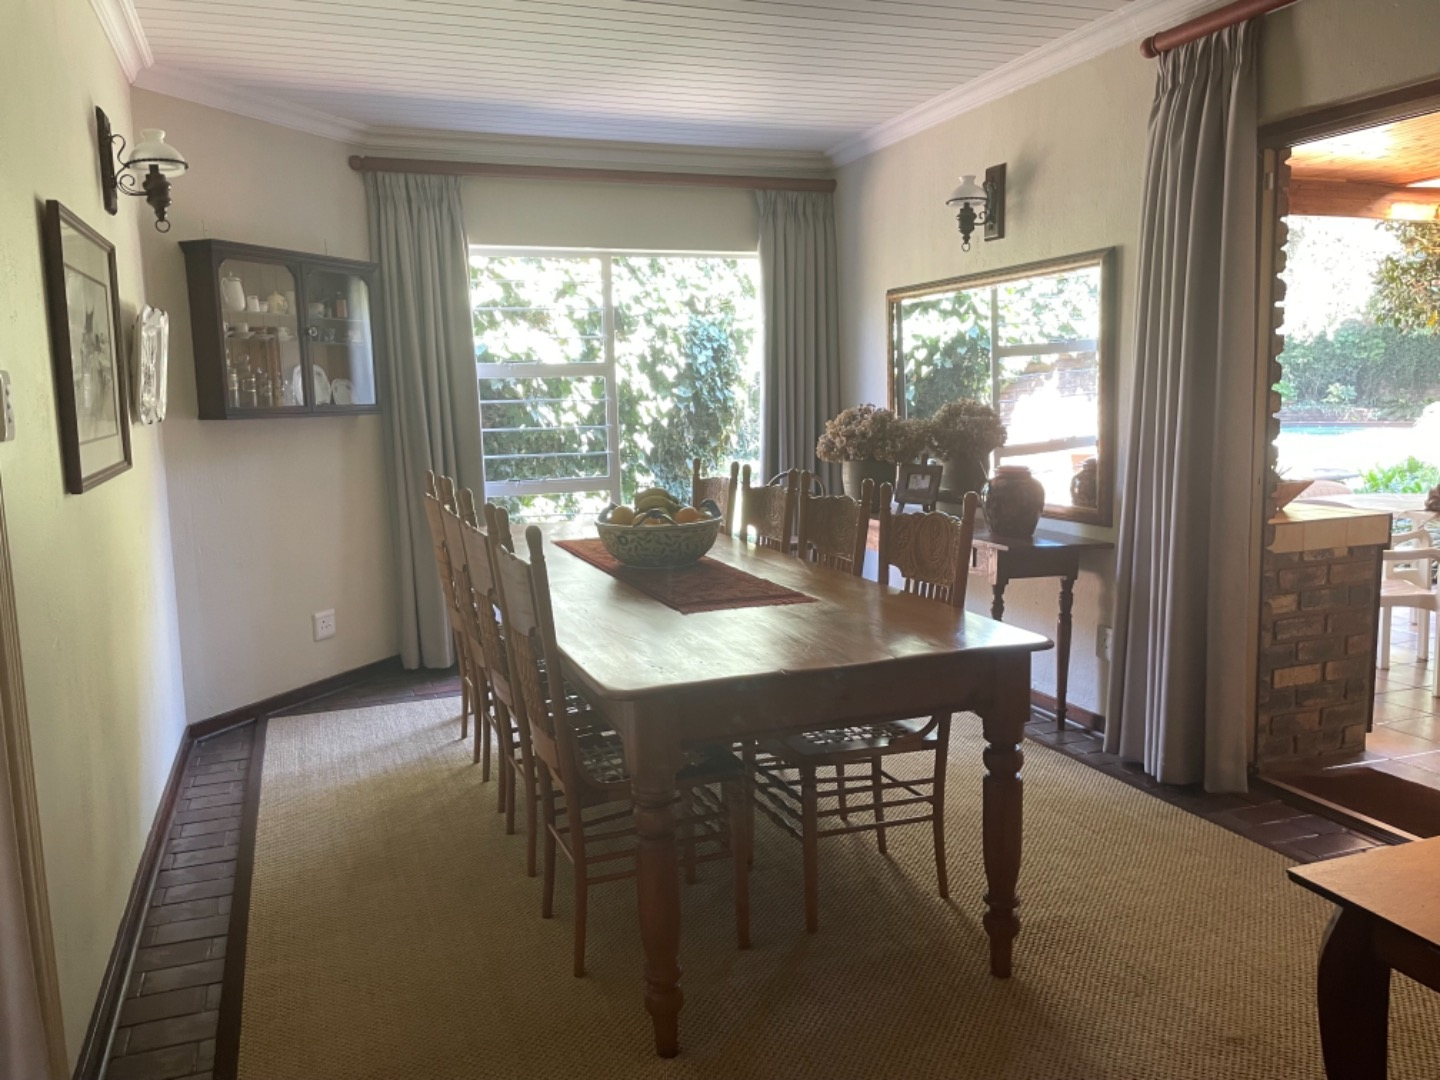 5 Bedroom House For Sale in Clubville